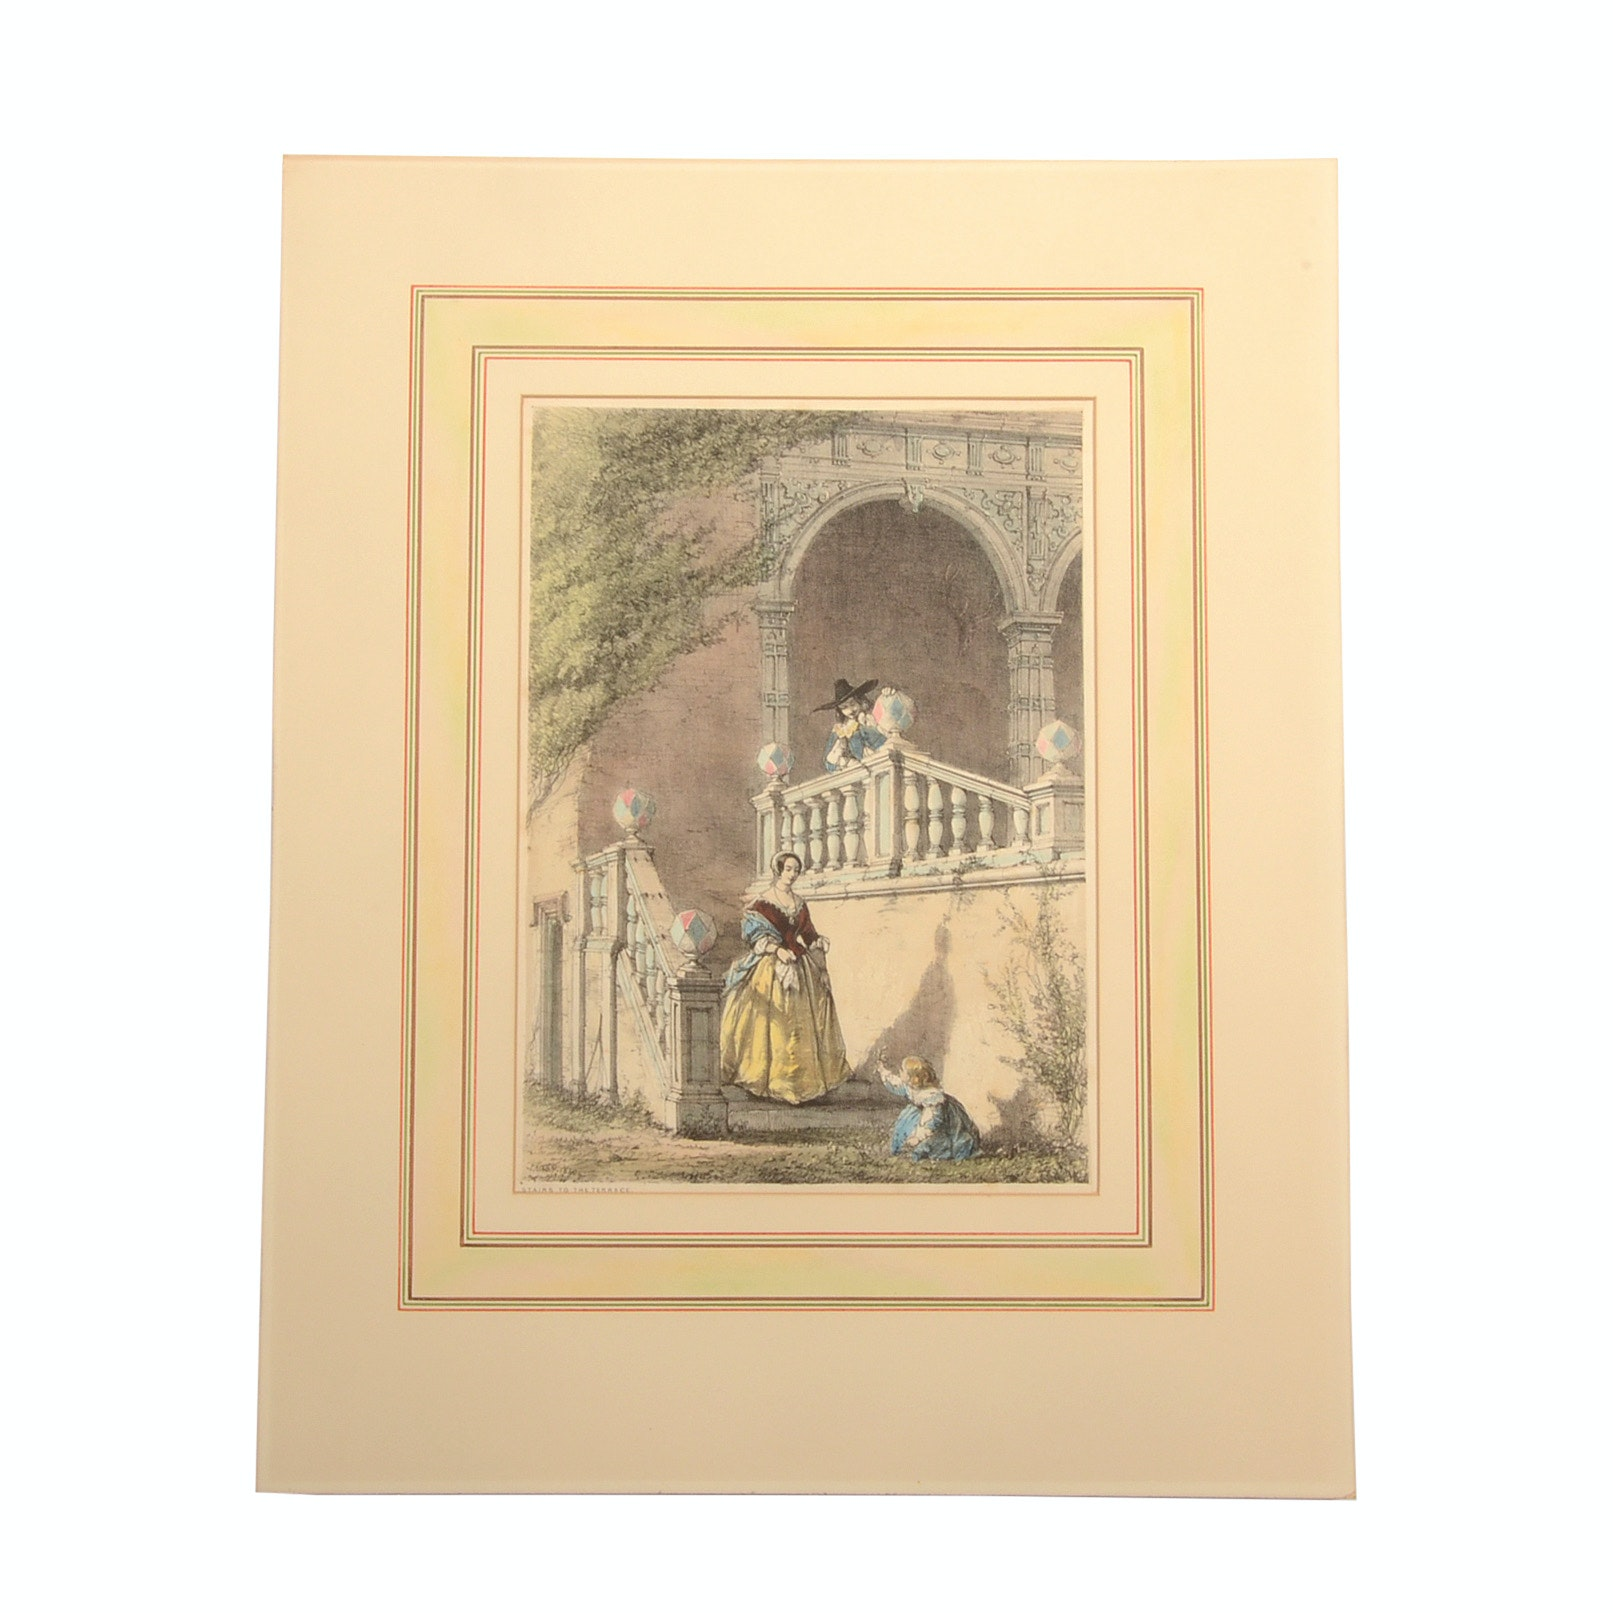 """M. & N. Hanhart 19th Century Stone Lithograph """"Stairs to the Terr"""